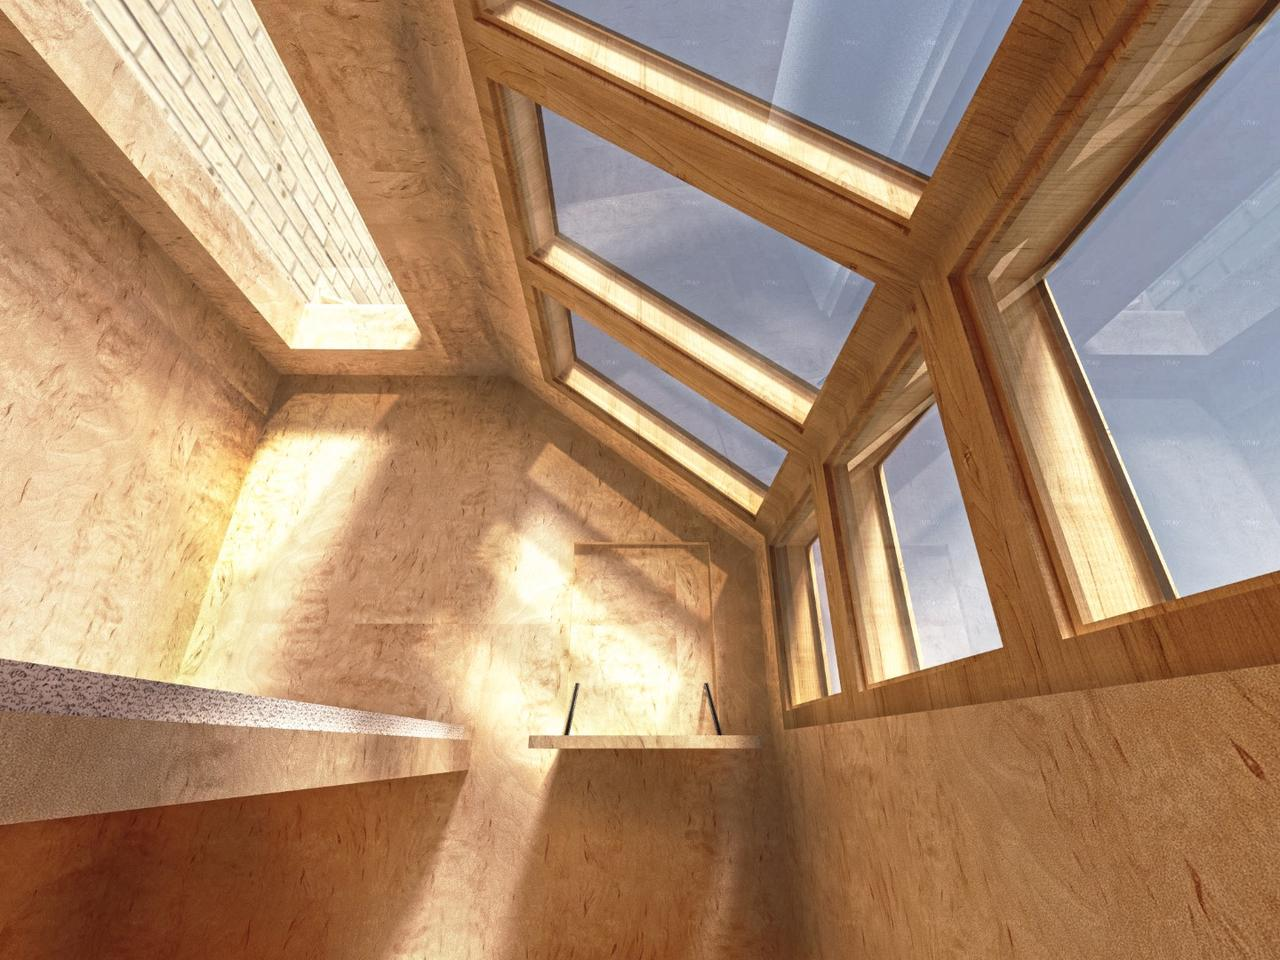 The pods can be constructed with a variety of materials, but the designs propose the use of insulated floor and wall paneling with zinc cladding